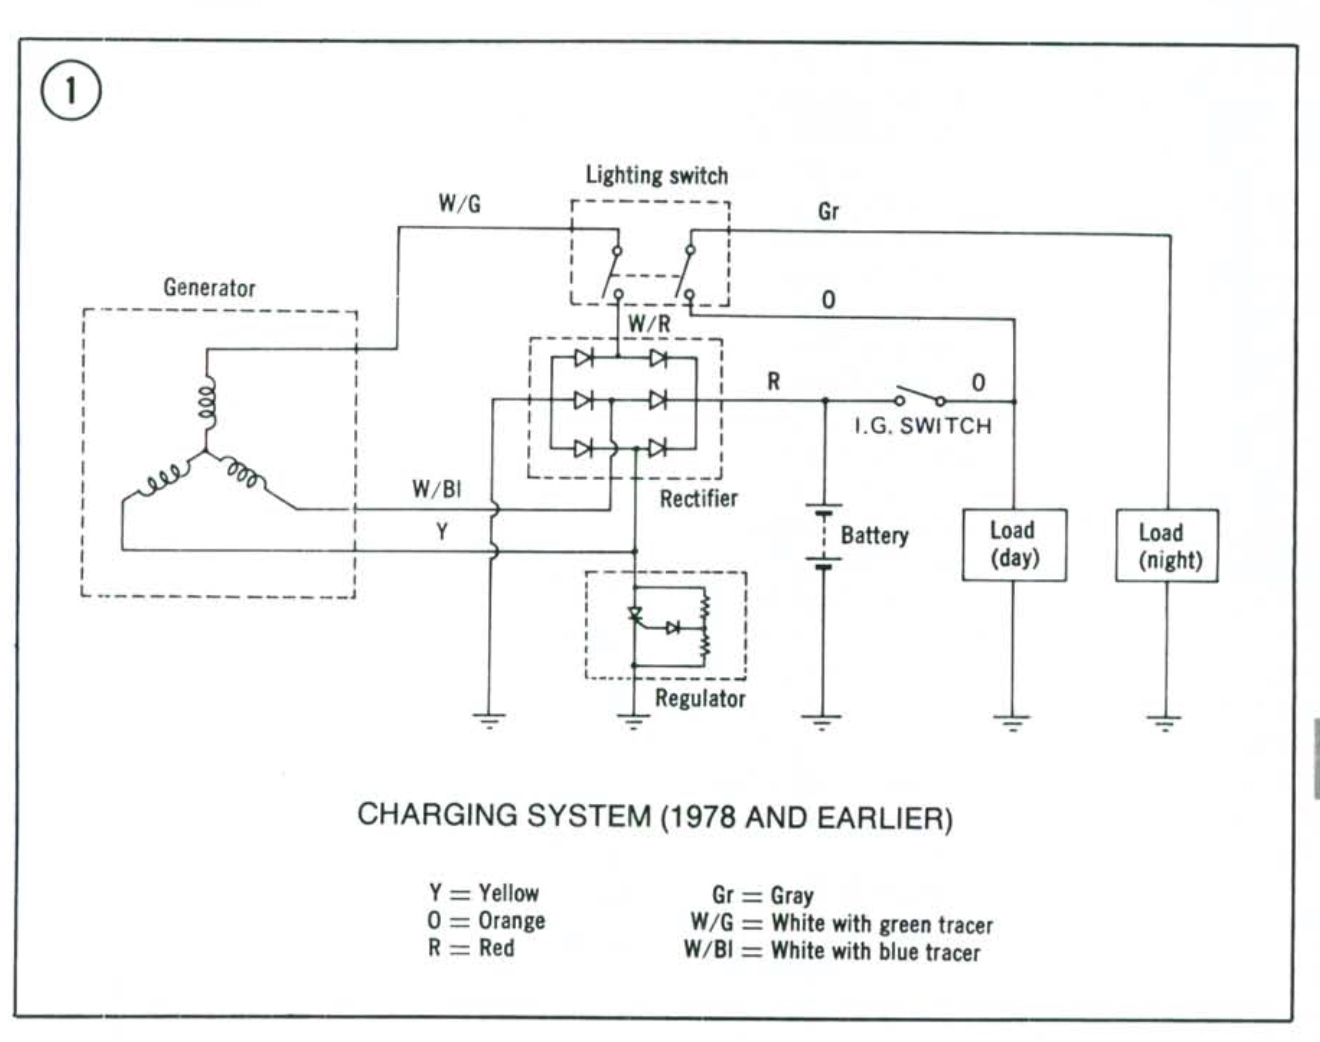 hight resolution of more detailed schematic of old charging system wiring diagram for you bridge rectifier how is the